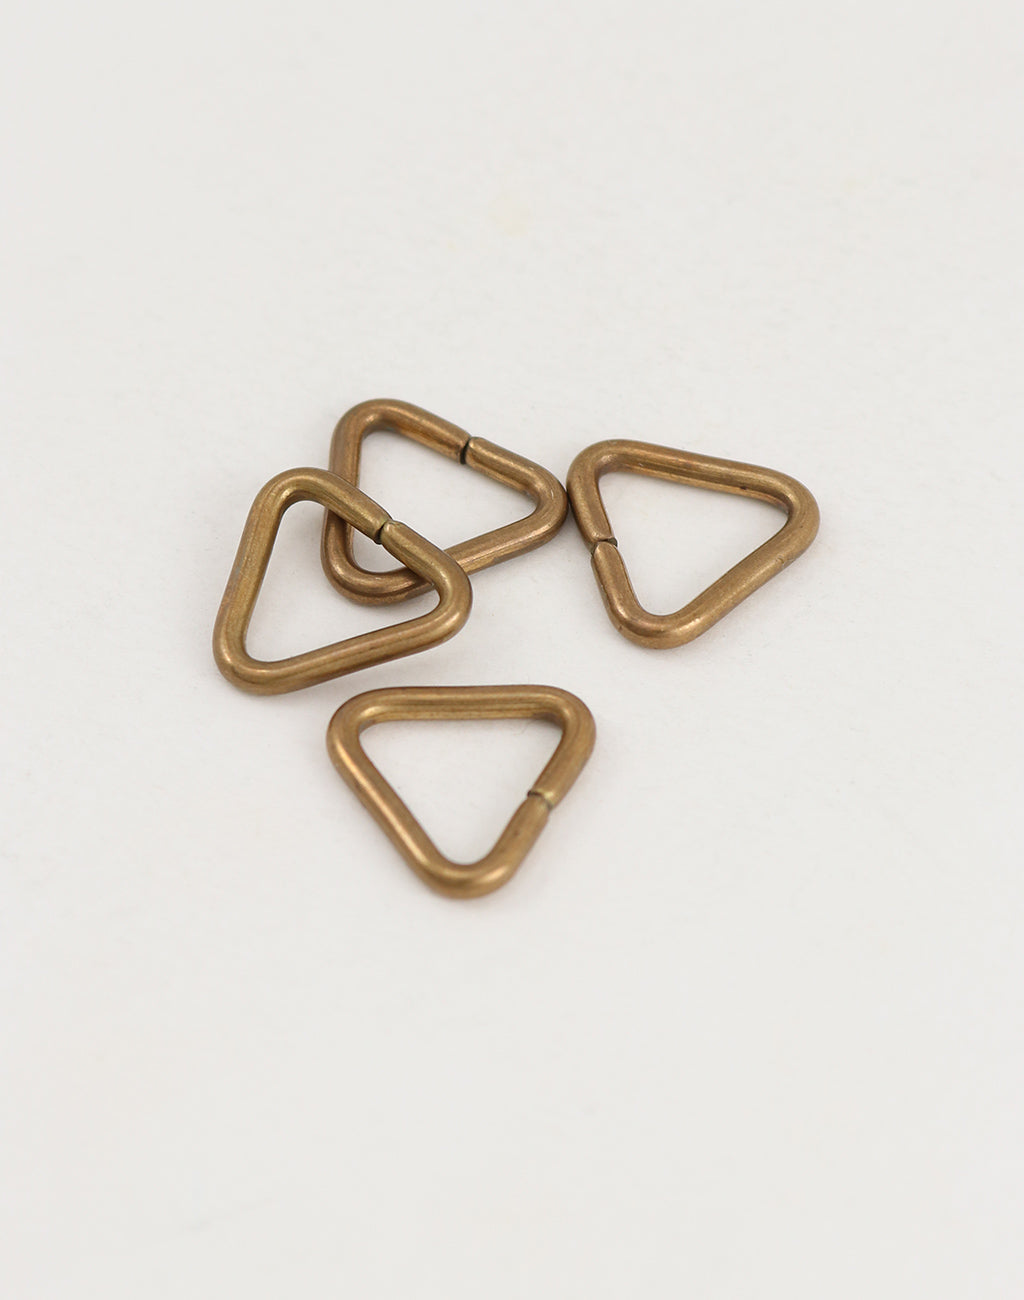 Triangle Jump Ring, 14.5mm, 12ga, (4pcs)